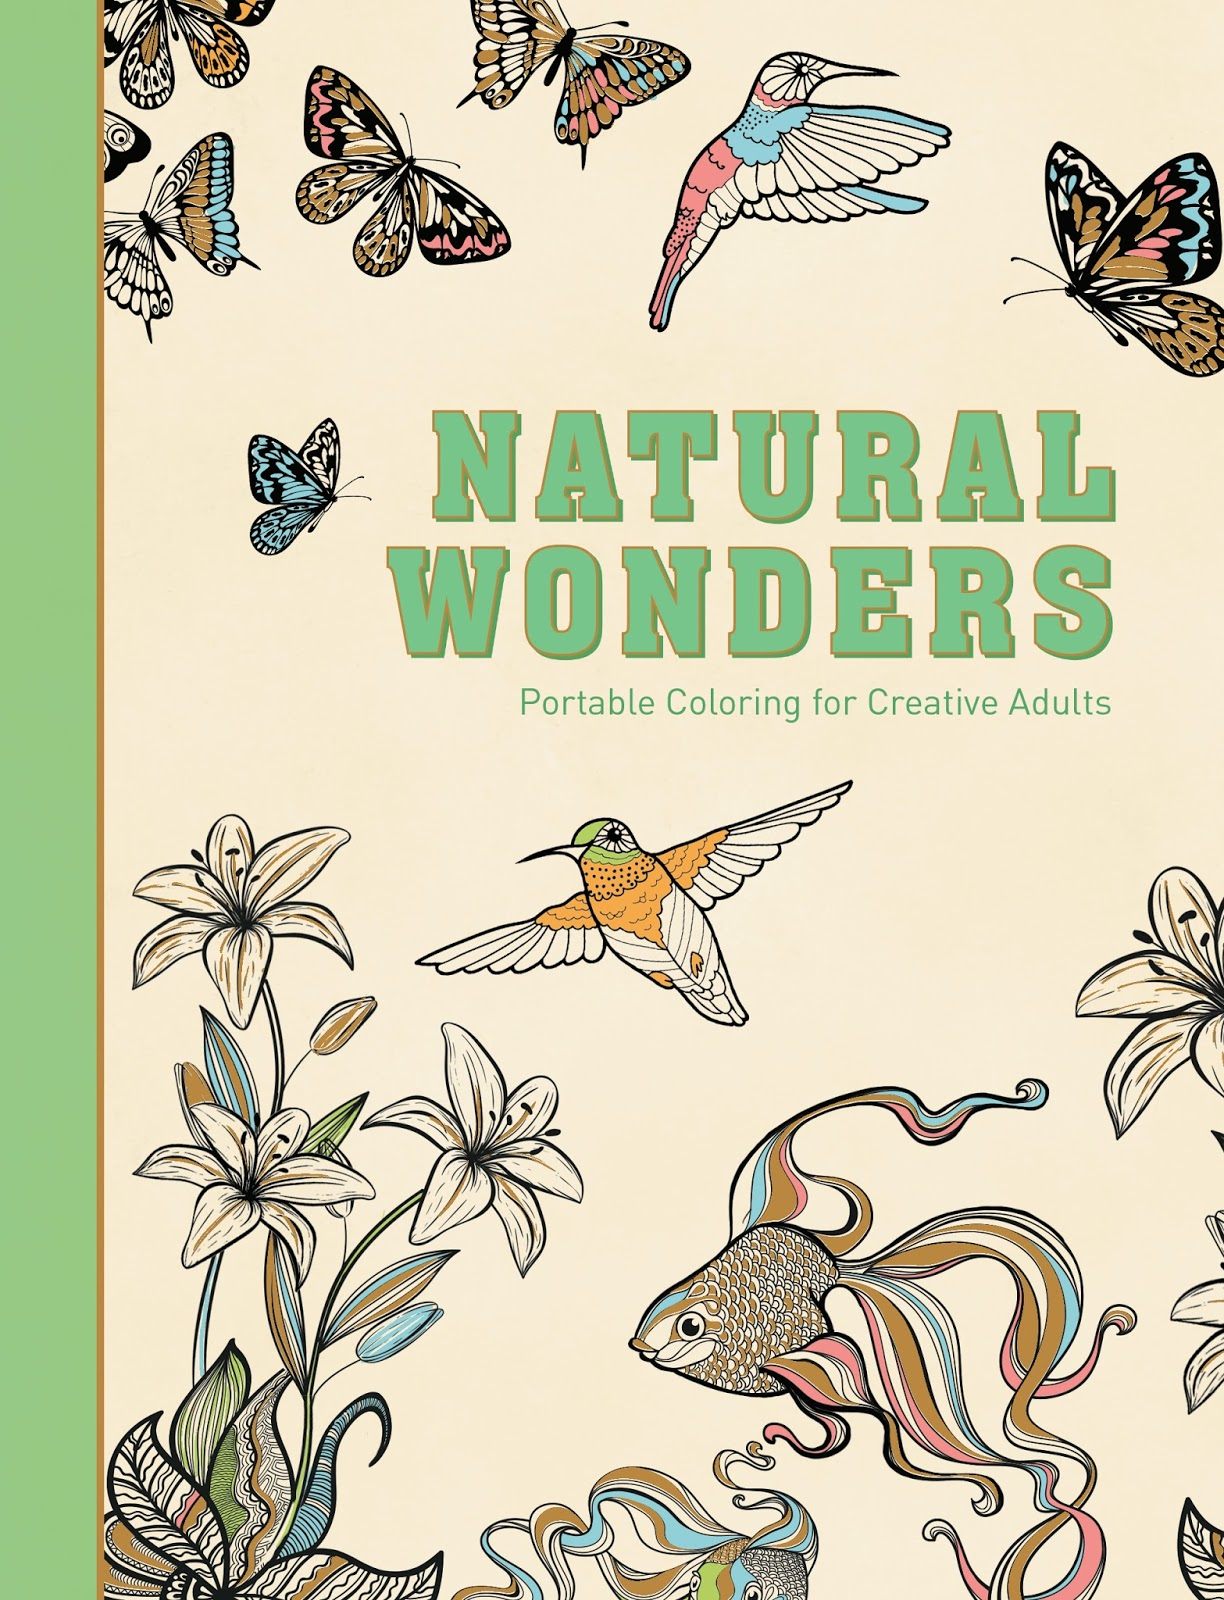 book review natural wonders and flying wonders coloring book series - How To Publish A Coloring Book